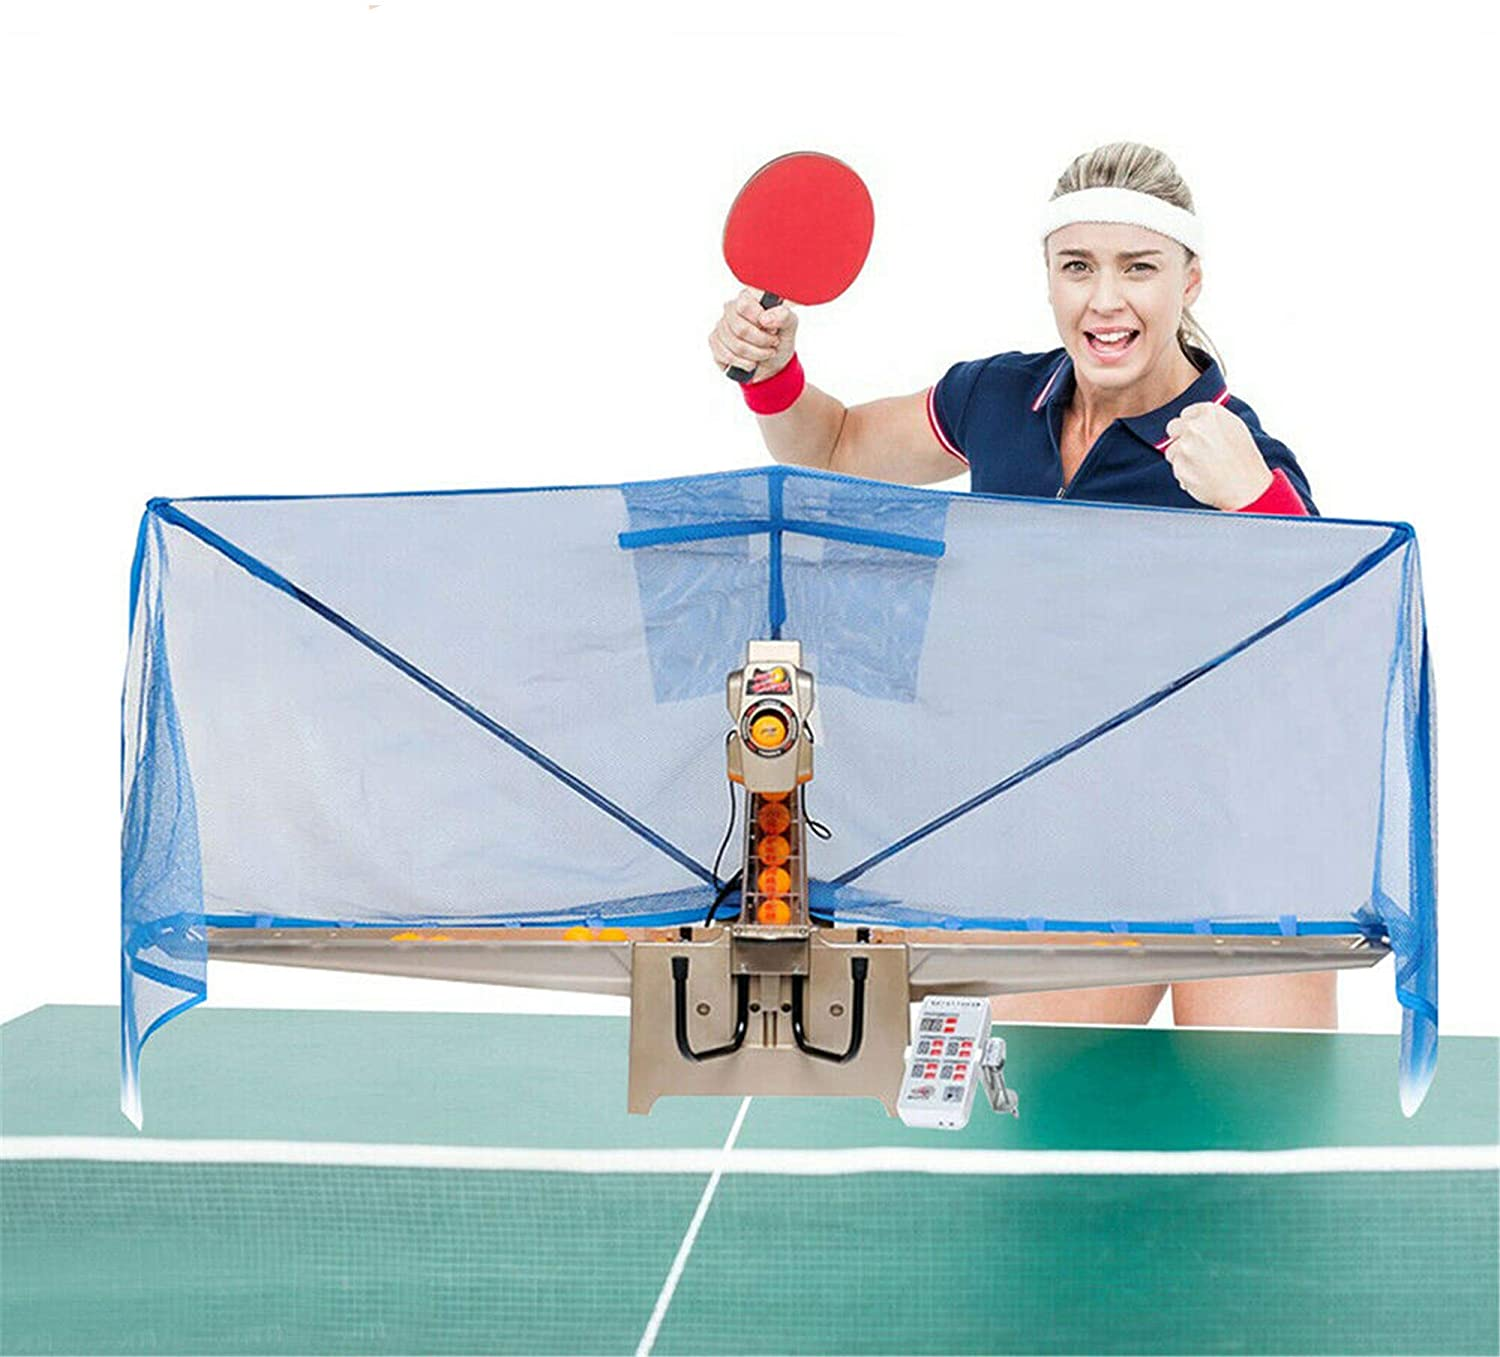 DNYSYSJ Table Tennis Robot Automatic Ping Pong Ball Machine with Catch Net for Ping Pong Practicing Training Exercise, Including Remote Control